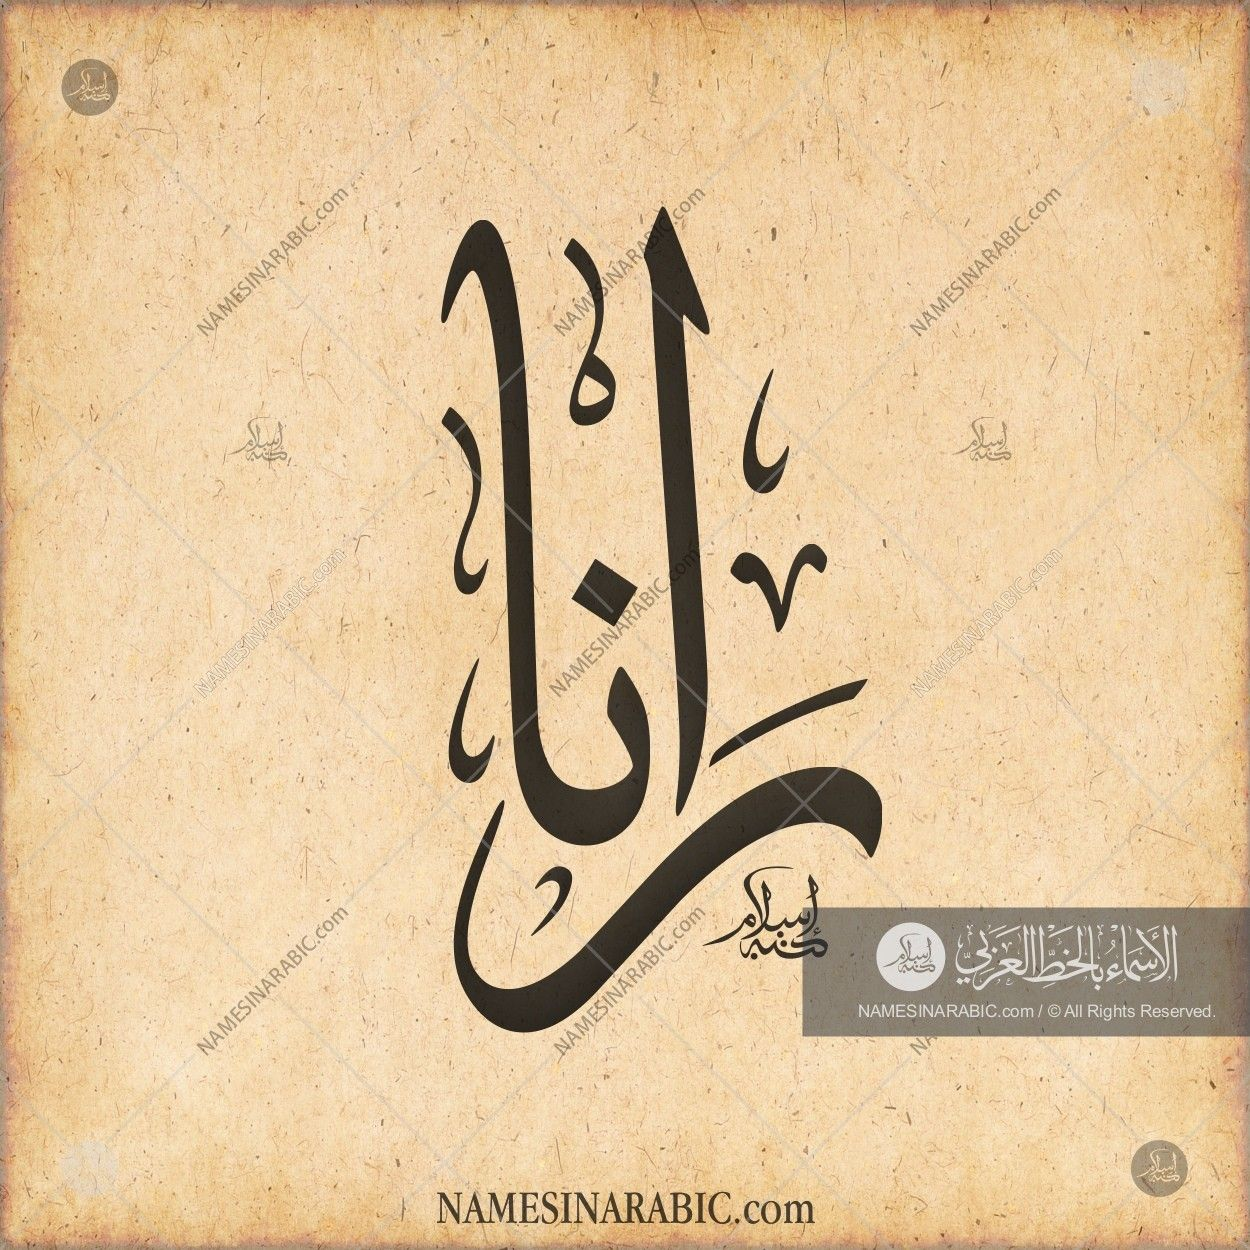 Rana رانا Names In Arabic Calligraphy Name 3372 Calligraphy Name Calligraphy Names